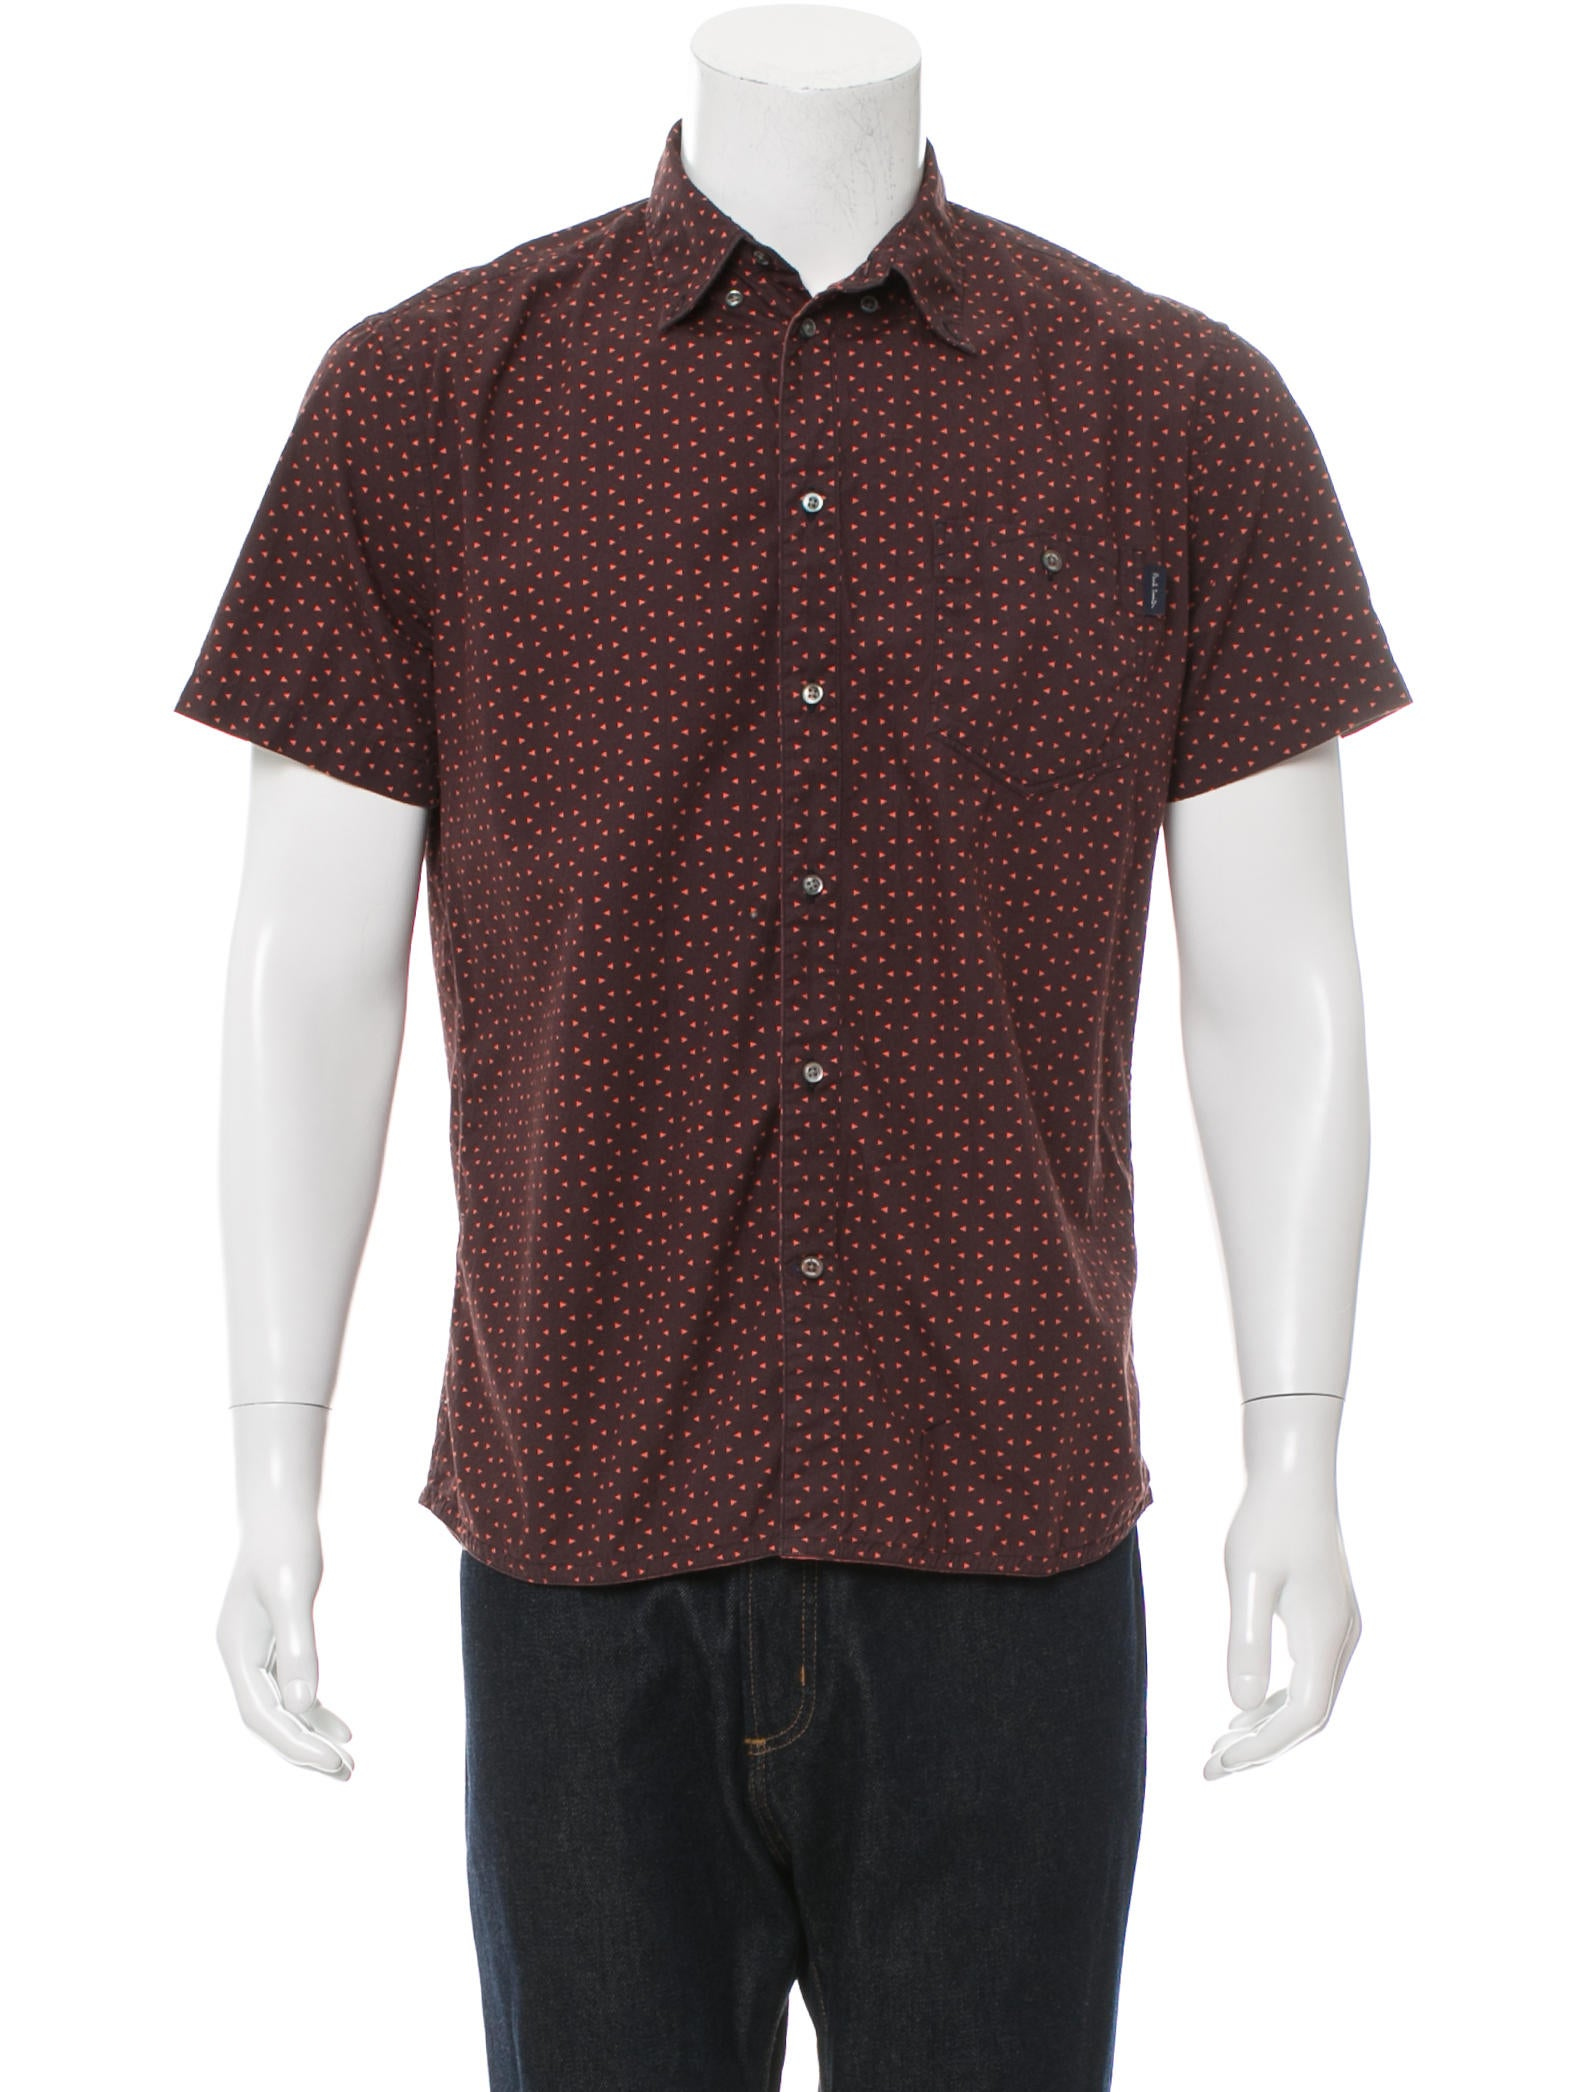 smiths clothing Find a great selection of hastings & smith clothing at boscov's we have pieces that complement your style & match any occasion shop online today.